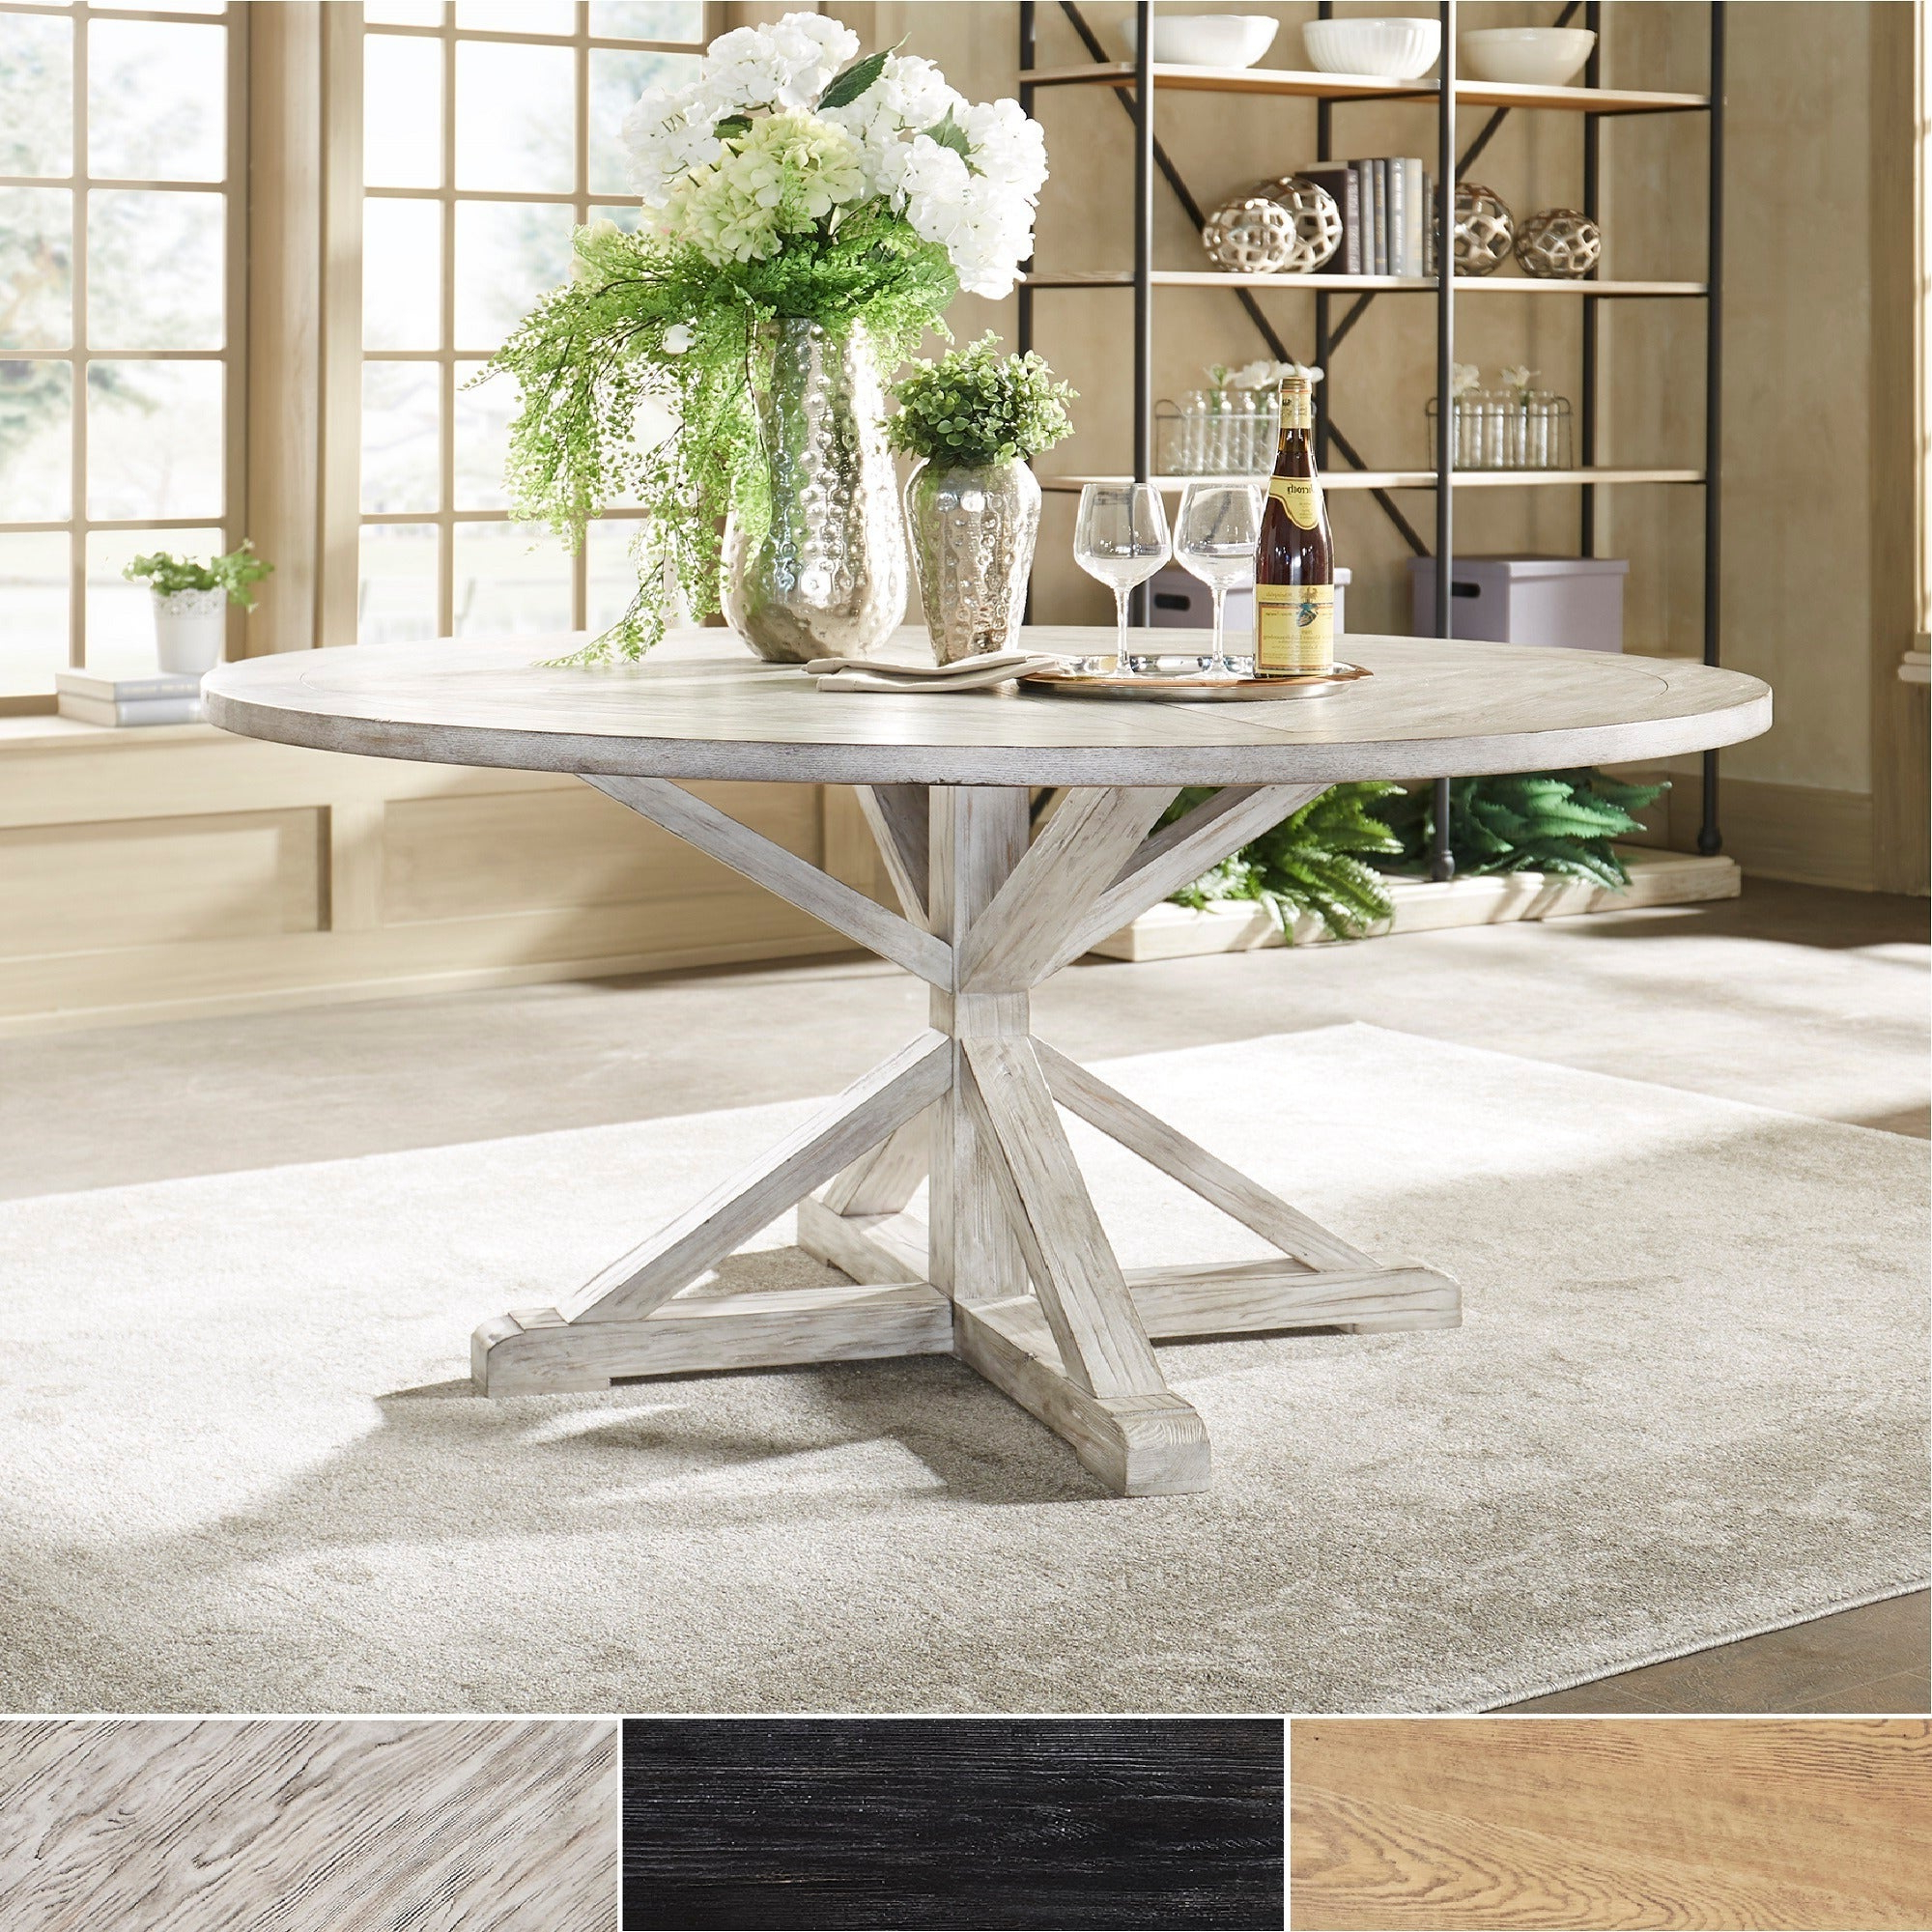 Benchwright Round Pedestal Dining Tables Intended For Best And Newest Benchwright Rustic X Base Round Pine Wood Dining Tableinspire Q Artisan (View 9 of 25)